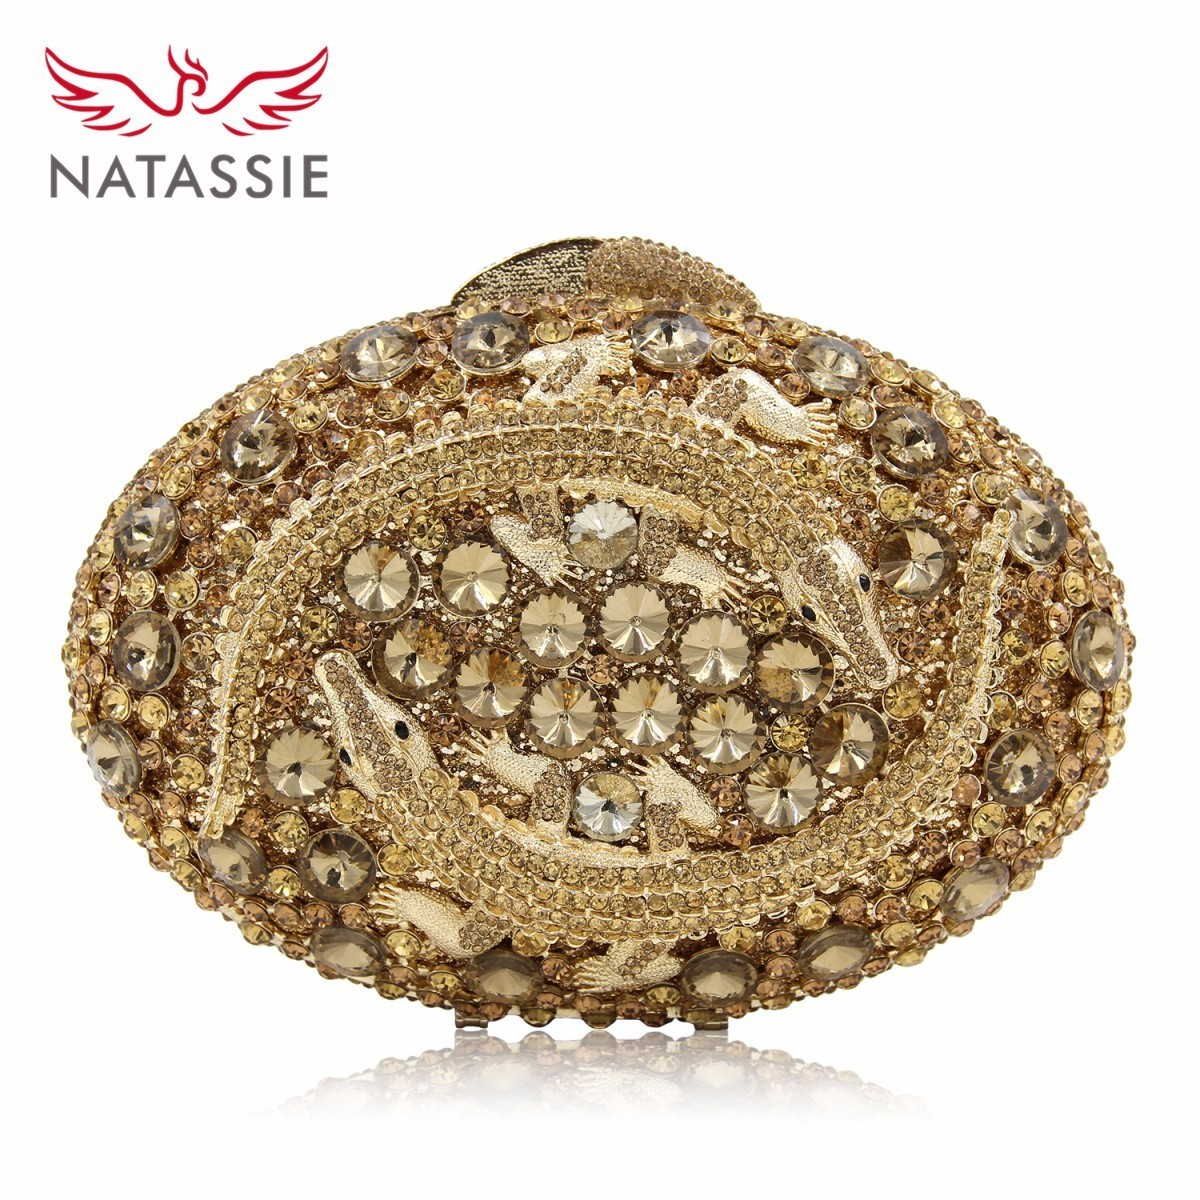 NATASSIE Women Luxury Crystal Clutch Evening Bag Two Crocodile Clutches Bag Hollow Out Party Purses Dark Gold natassie new design luxury crystal clutch women evening bag gold red ladies wedding banquet party purses good quality